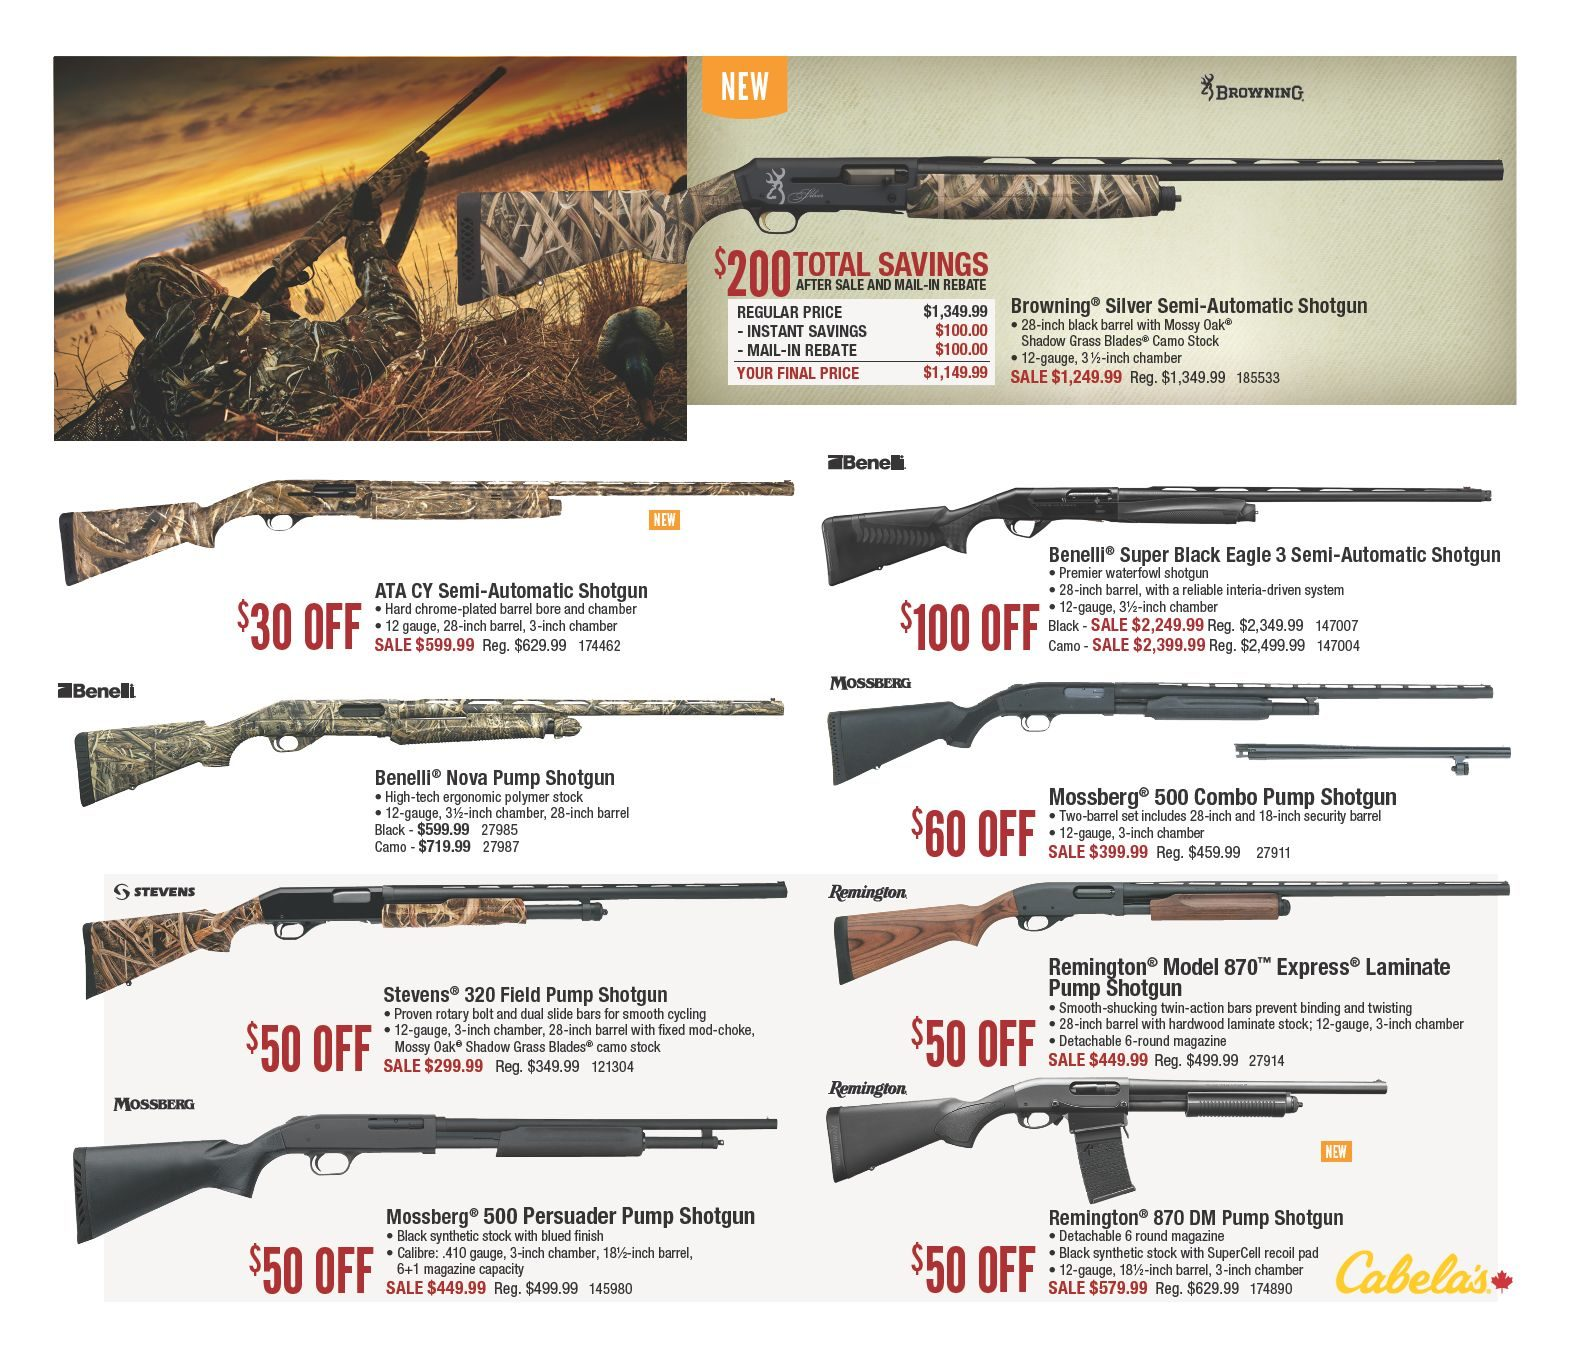 Cabelas Weekly Flyer Fall 2018 Hunting Classic Aug 10 26